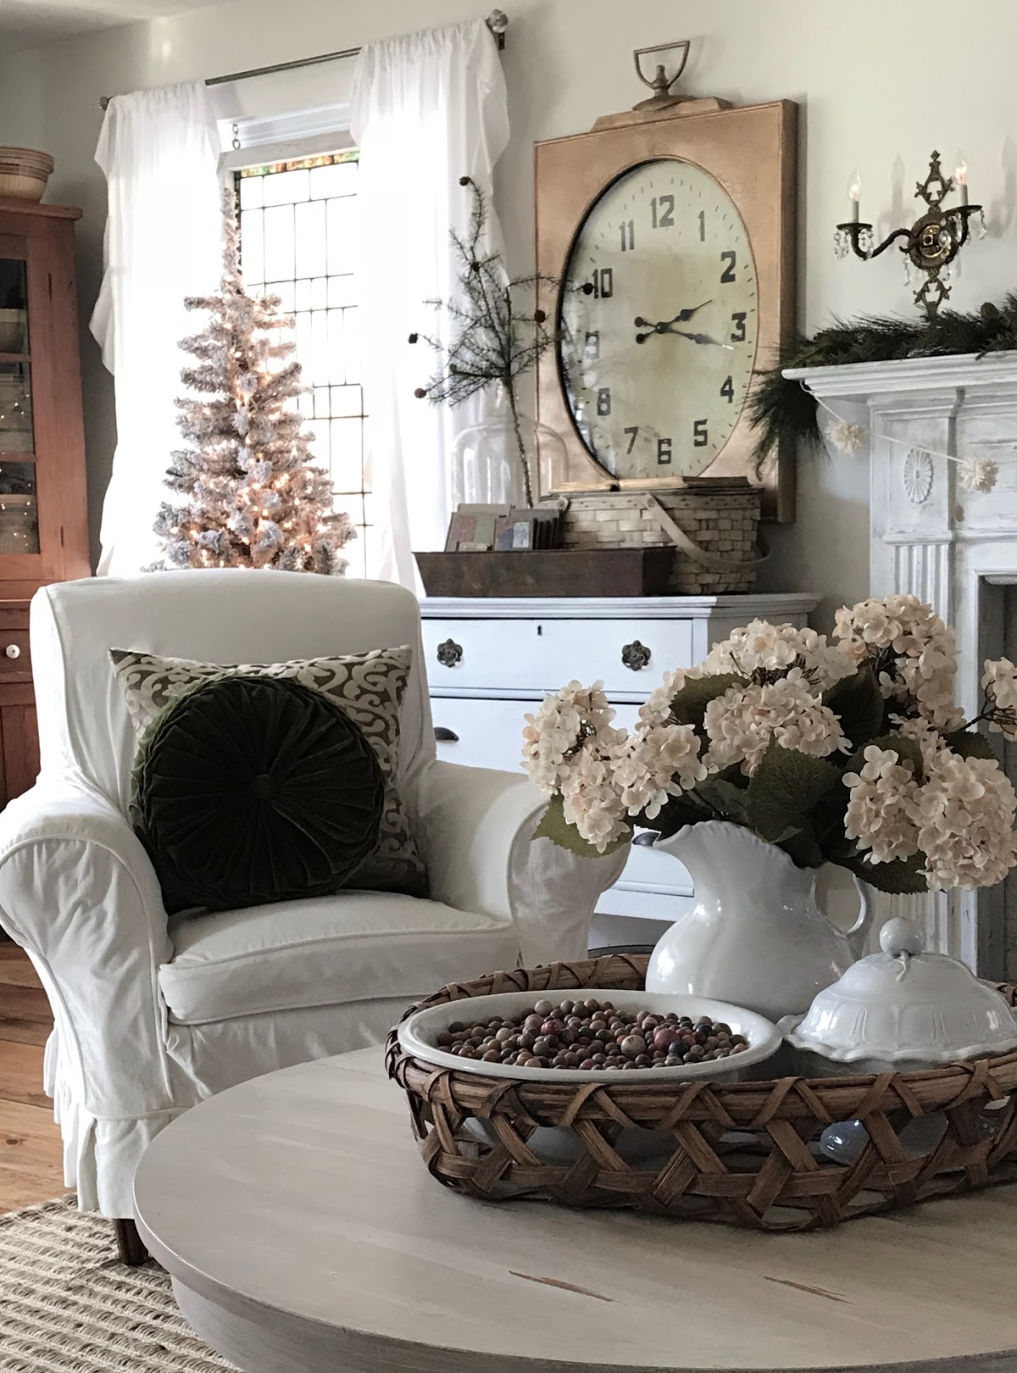 Farmhouse Christmas #farmhouse #farmhousechristmas #farmhousedecor #neutraldecor #cottagestyle #vintagedecor #vintagechristmas